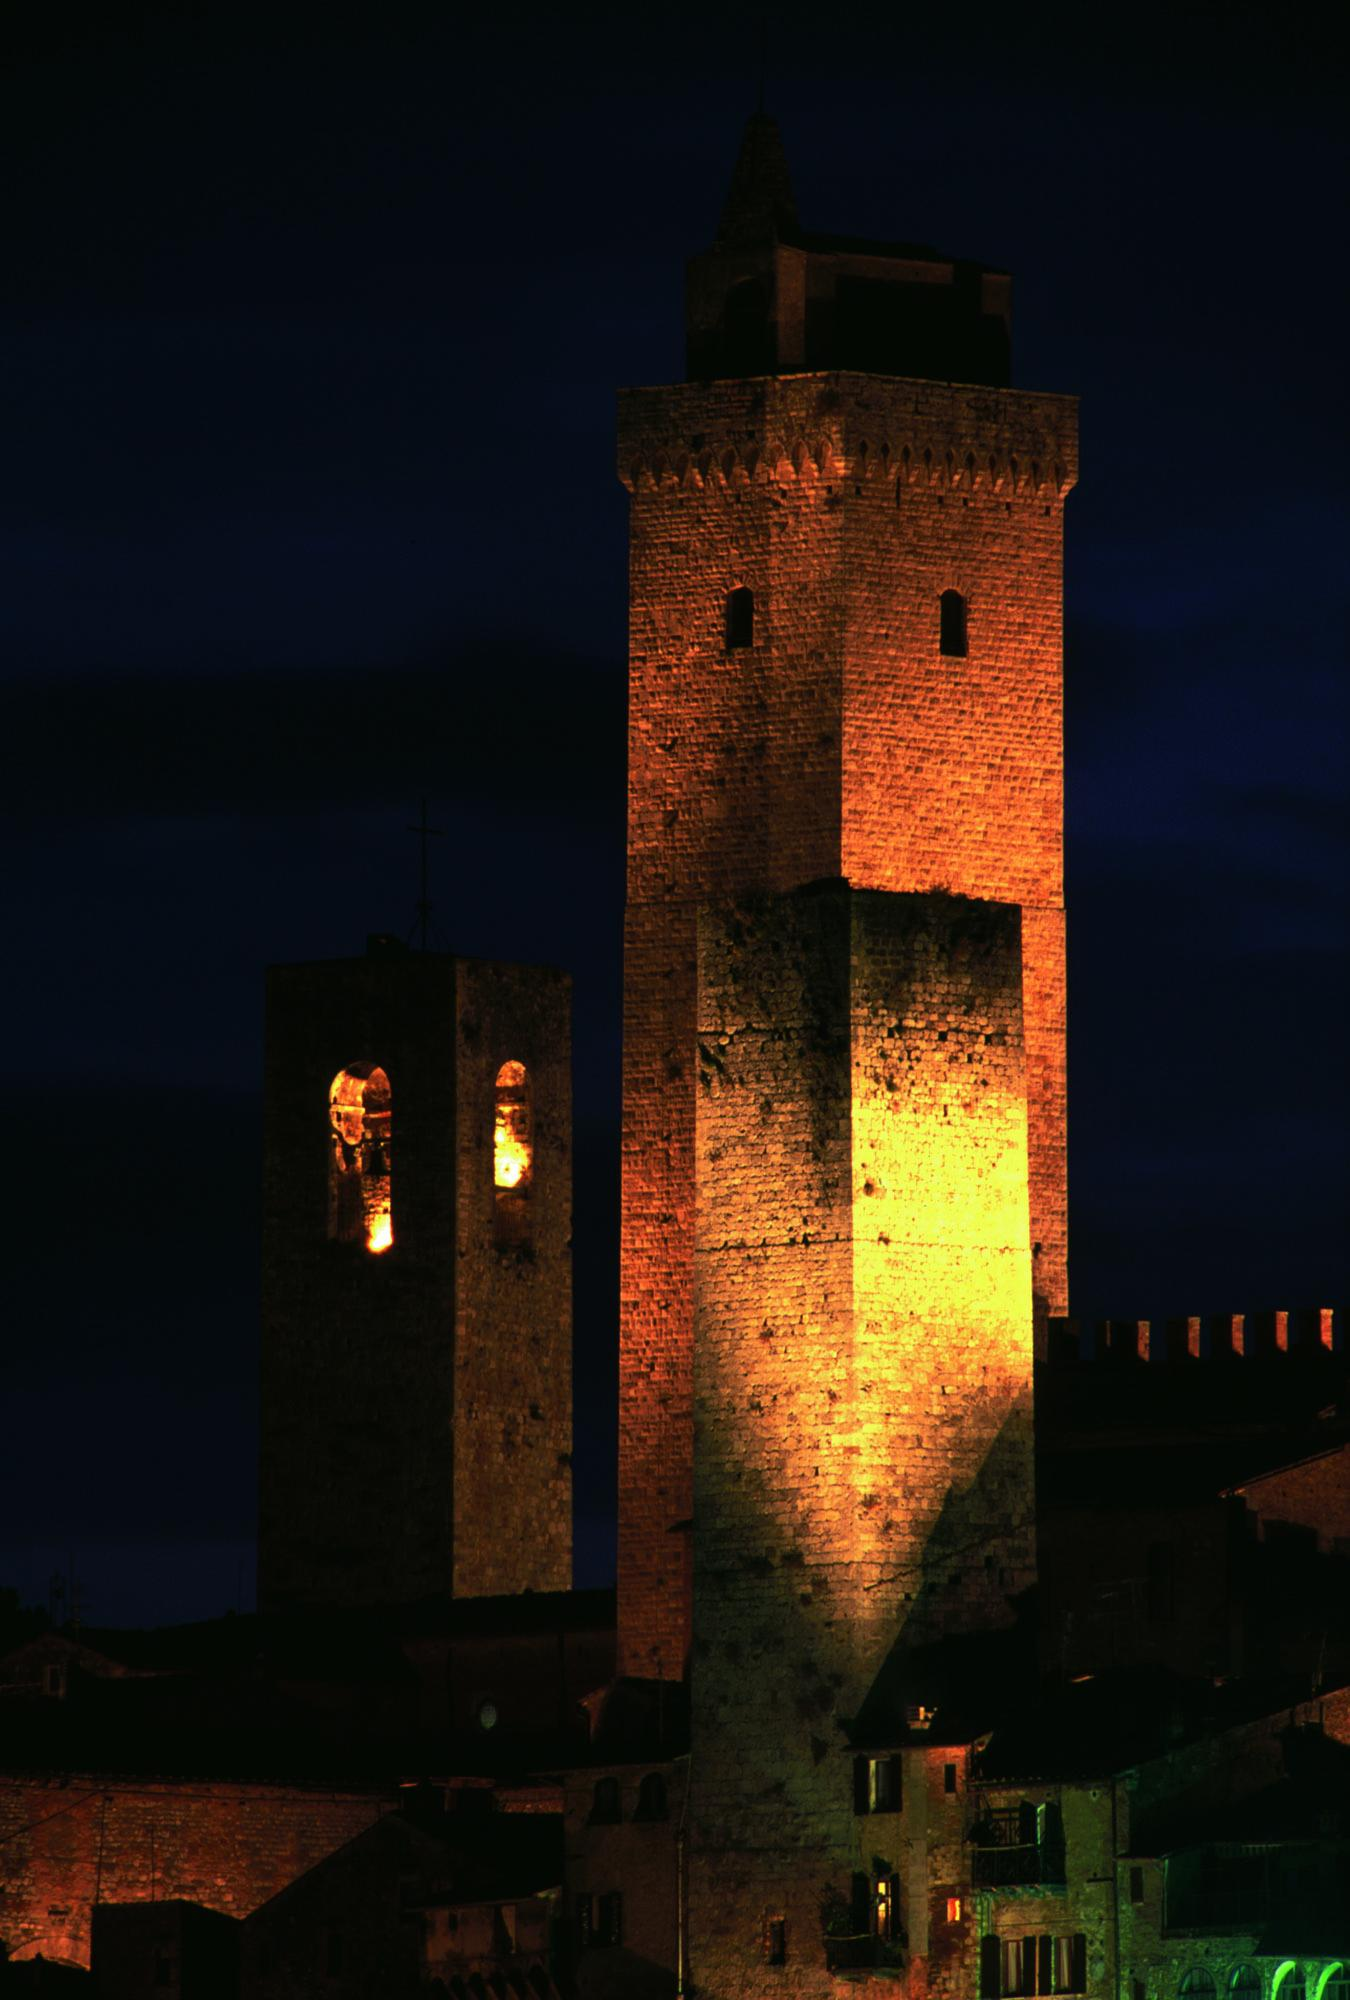 It is a magical experience to view the towers by night.